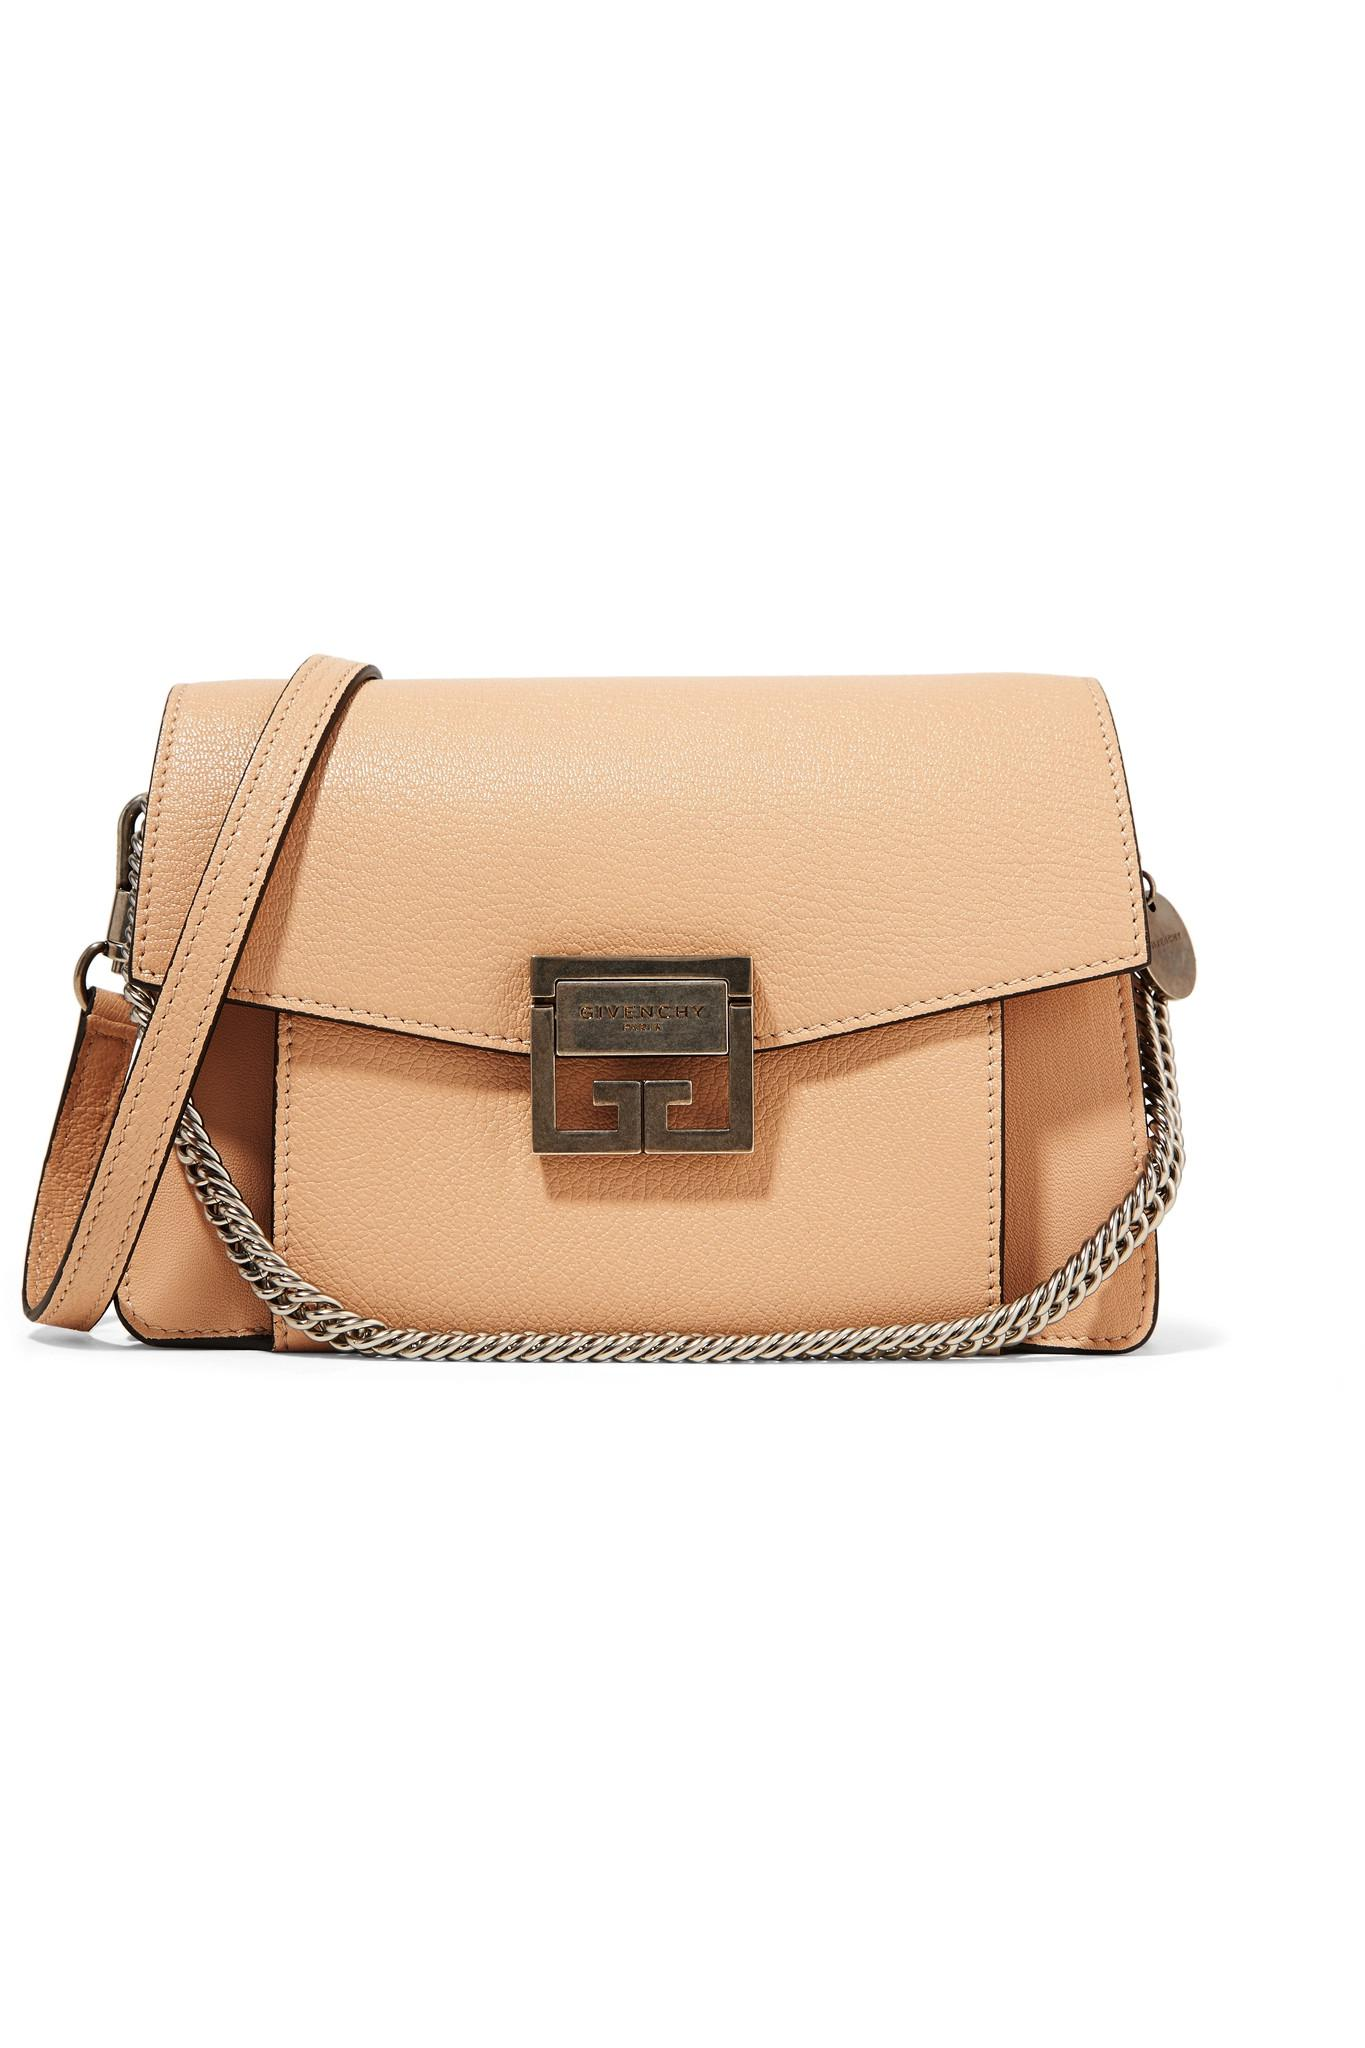 eb0d9c950d16 Givenchy - Natural Gv3 Small Leather Shoulder Bag - Lyst. View fullscreen